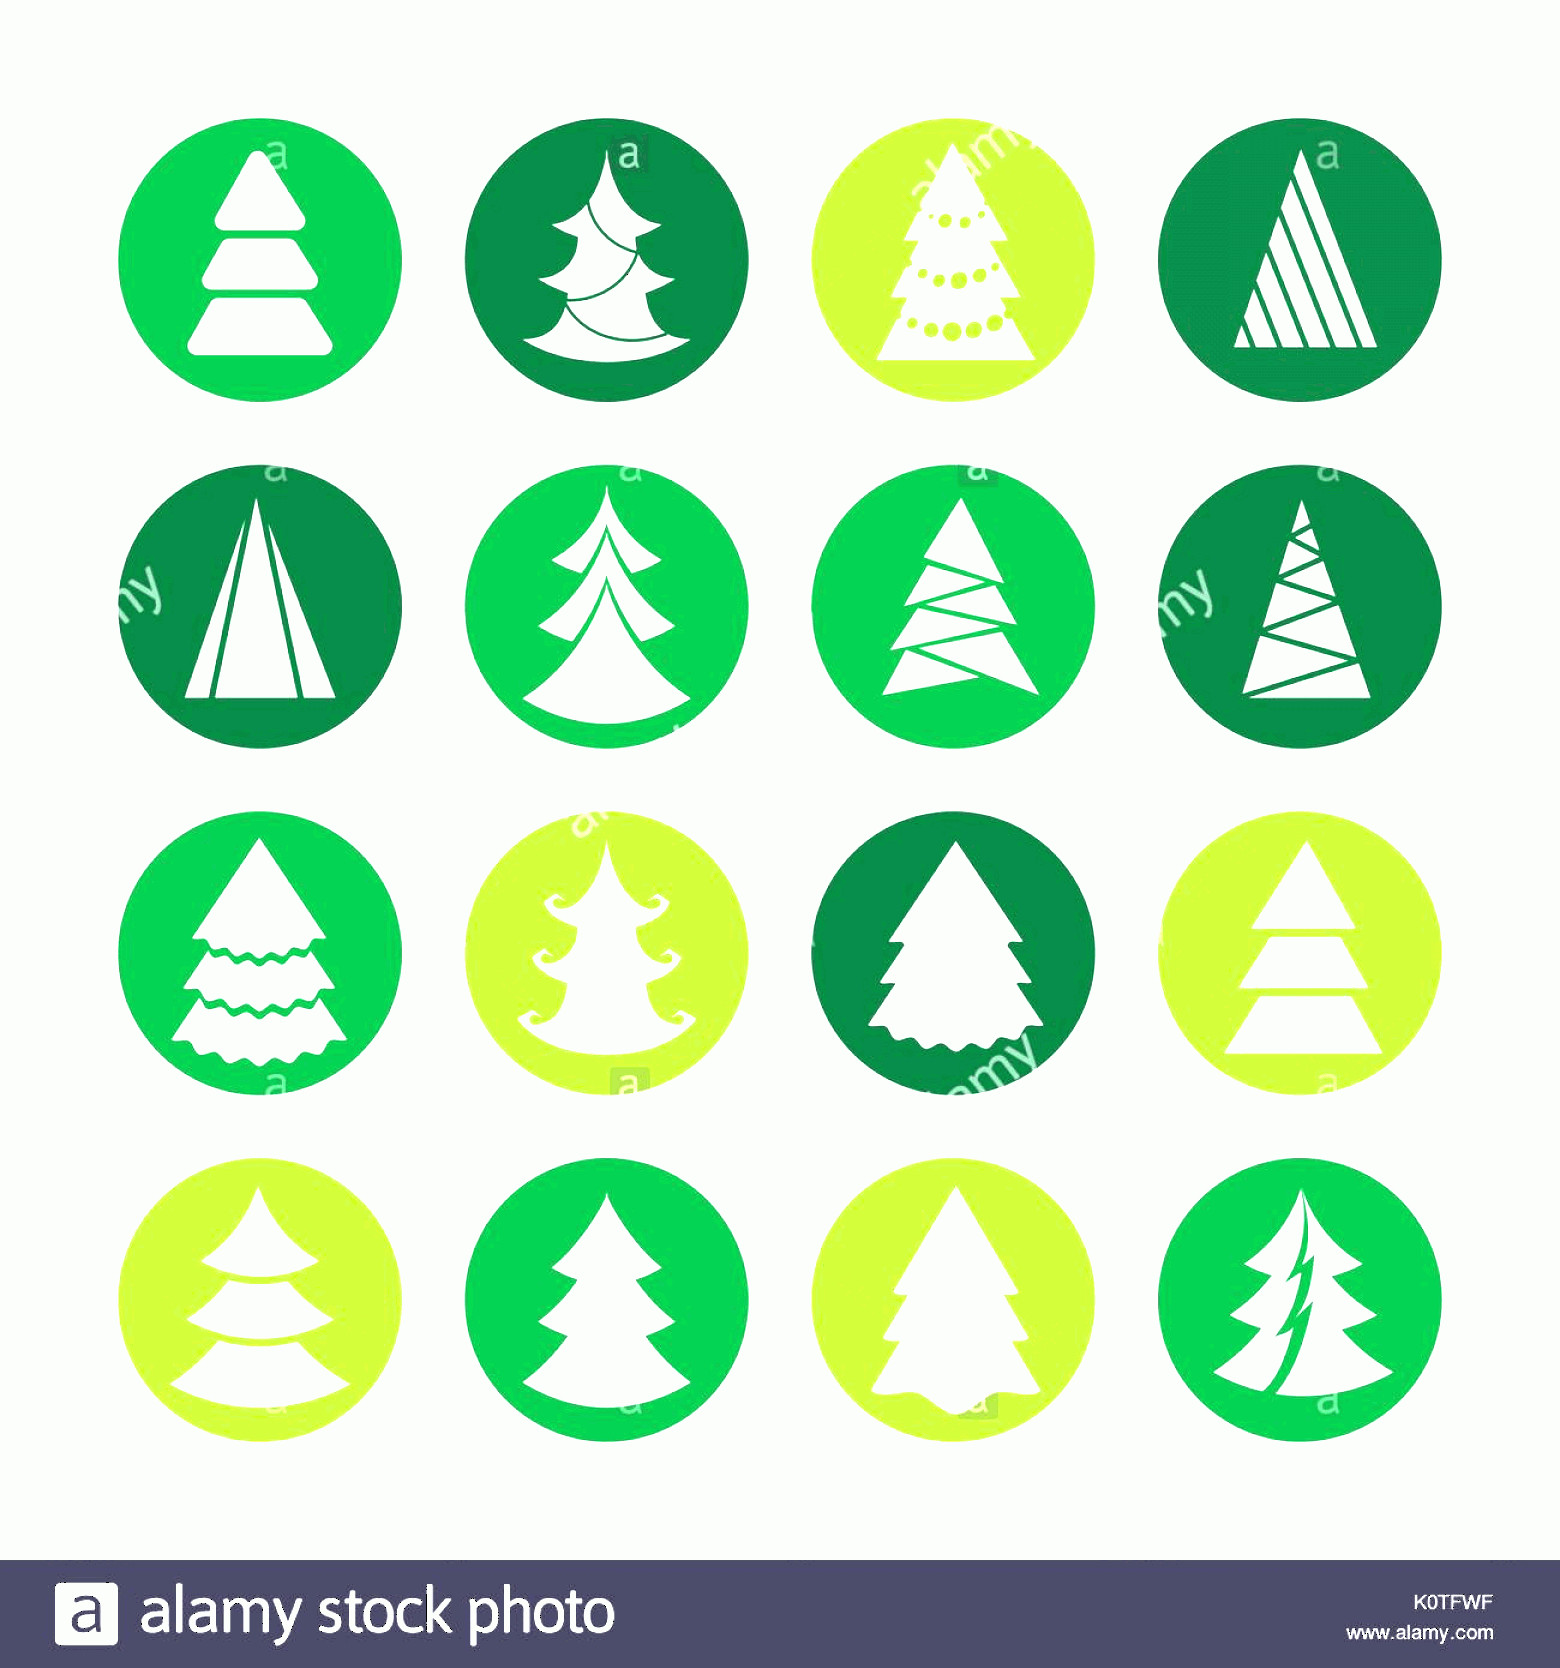 Vector Christmas Toppers: White Christmas Trees On Green Rounds Vector Christmas Tree Icons Image